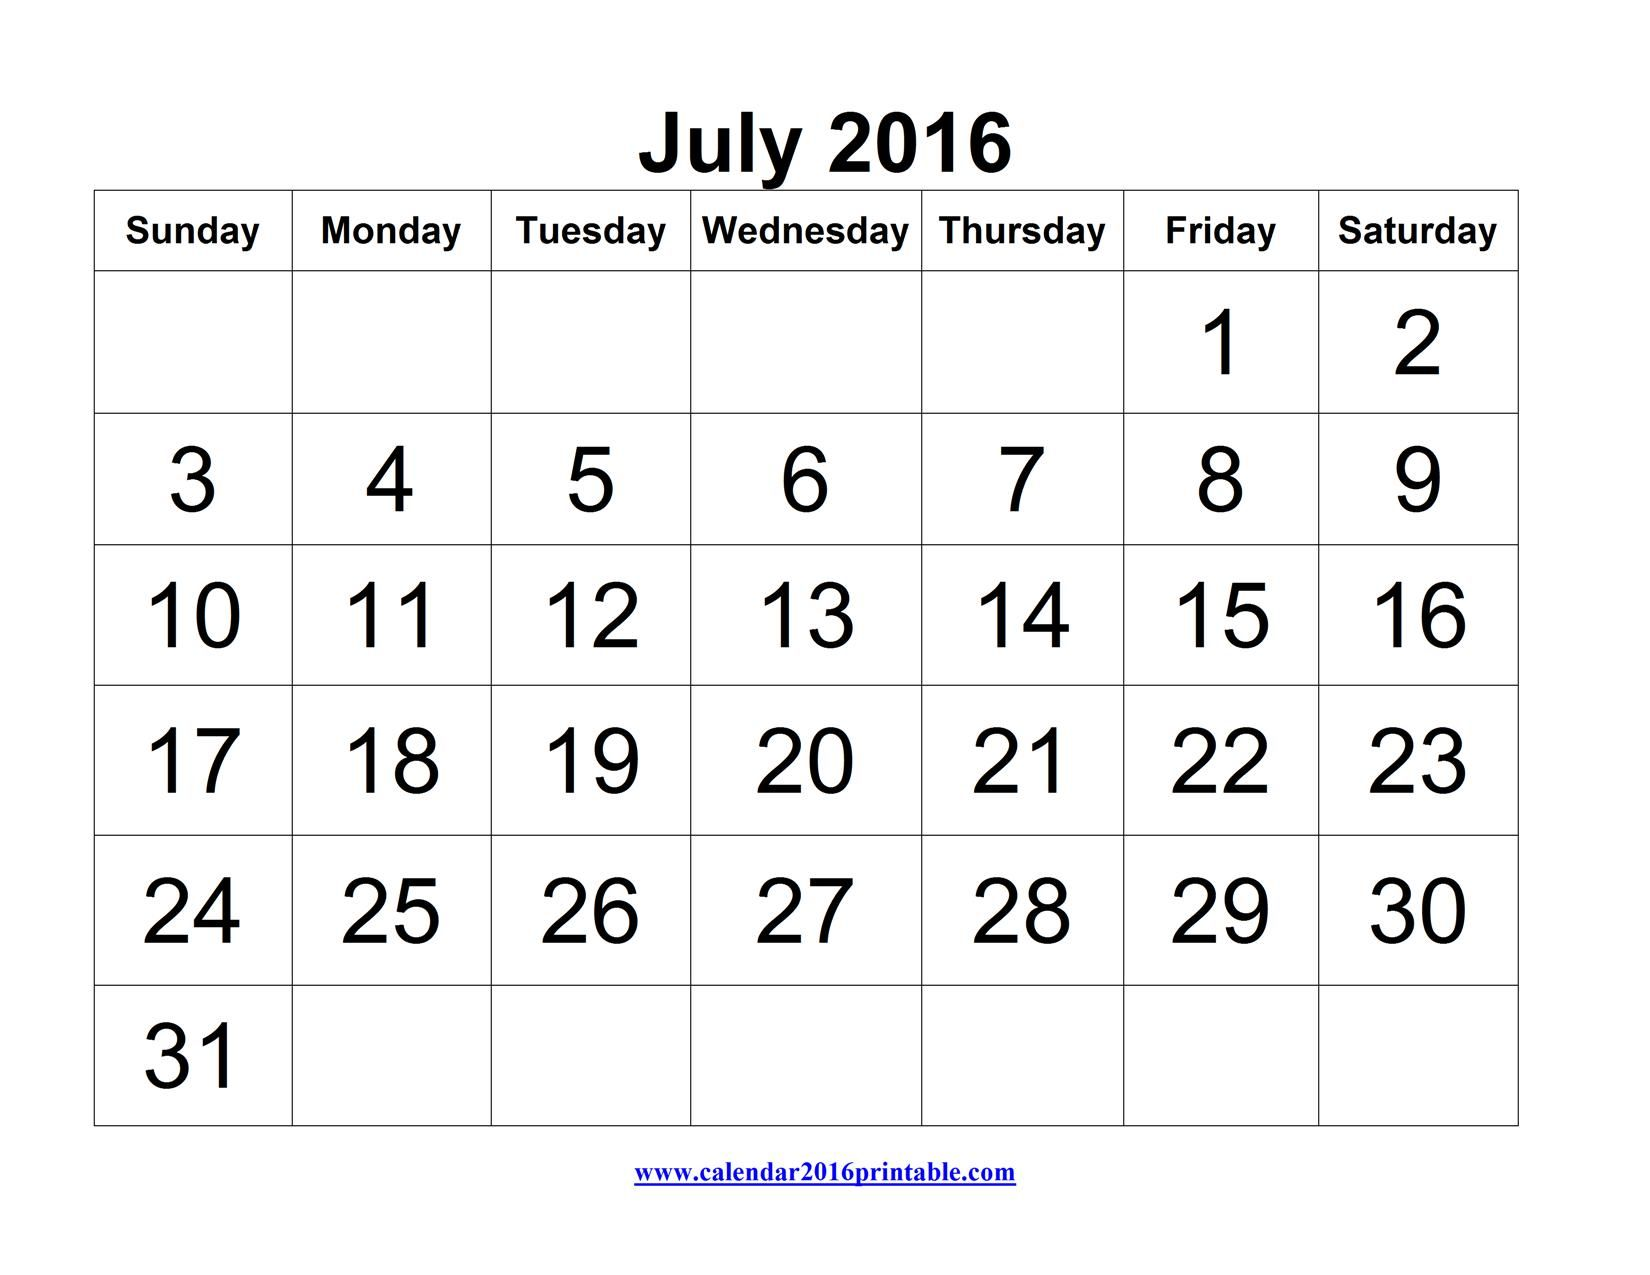 July 2016 Calendar Printable Excel Free To Download And Print